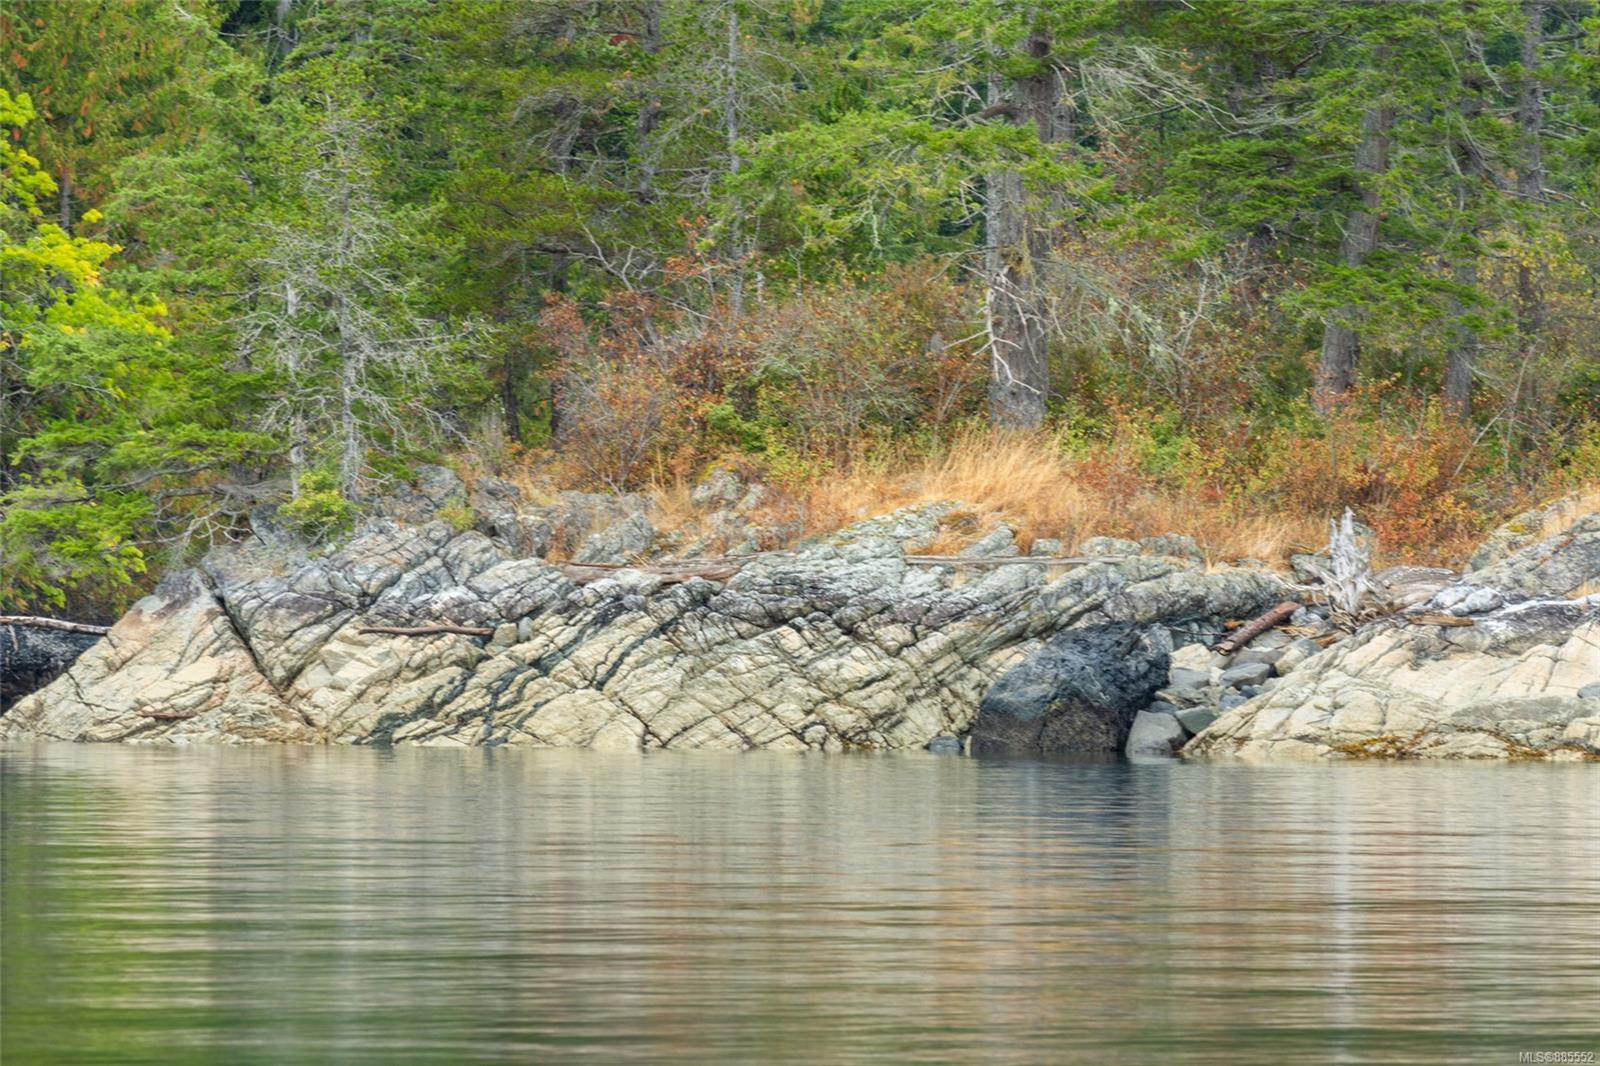 DL 2515 Bute Inlet - Isl Small Islands (Campbell River Area) Land for sale(885552) #37